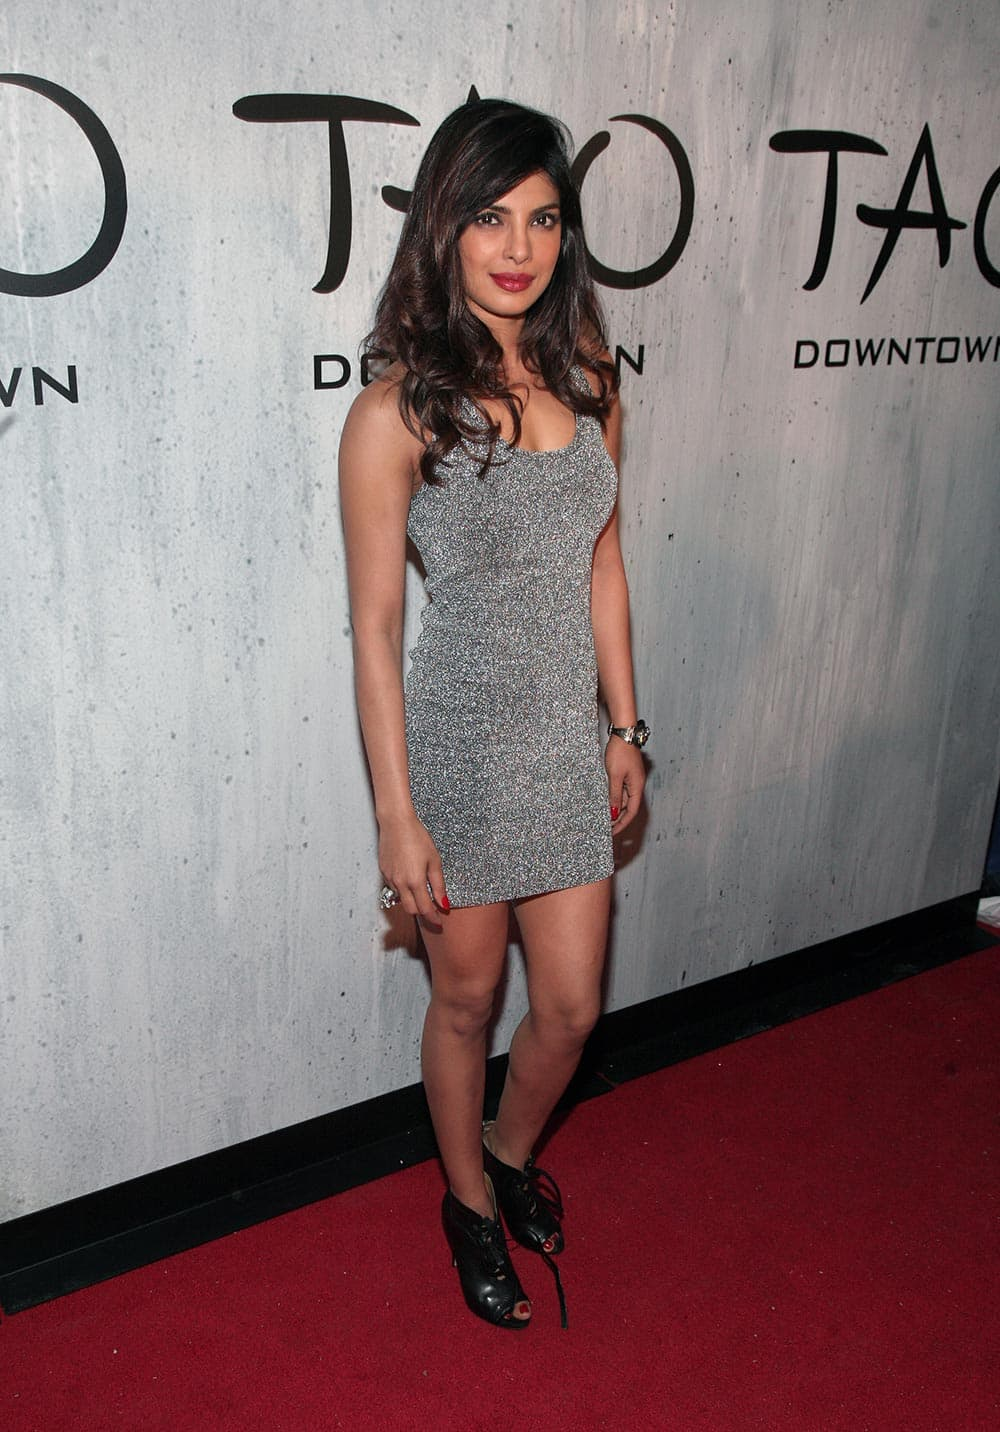 Actress Priyanka Chopra attends the TAO New York Downtown Opening Party, in New York.